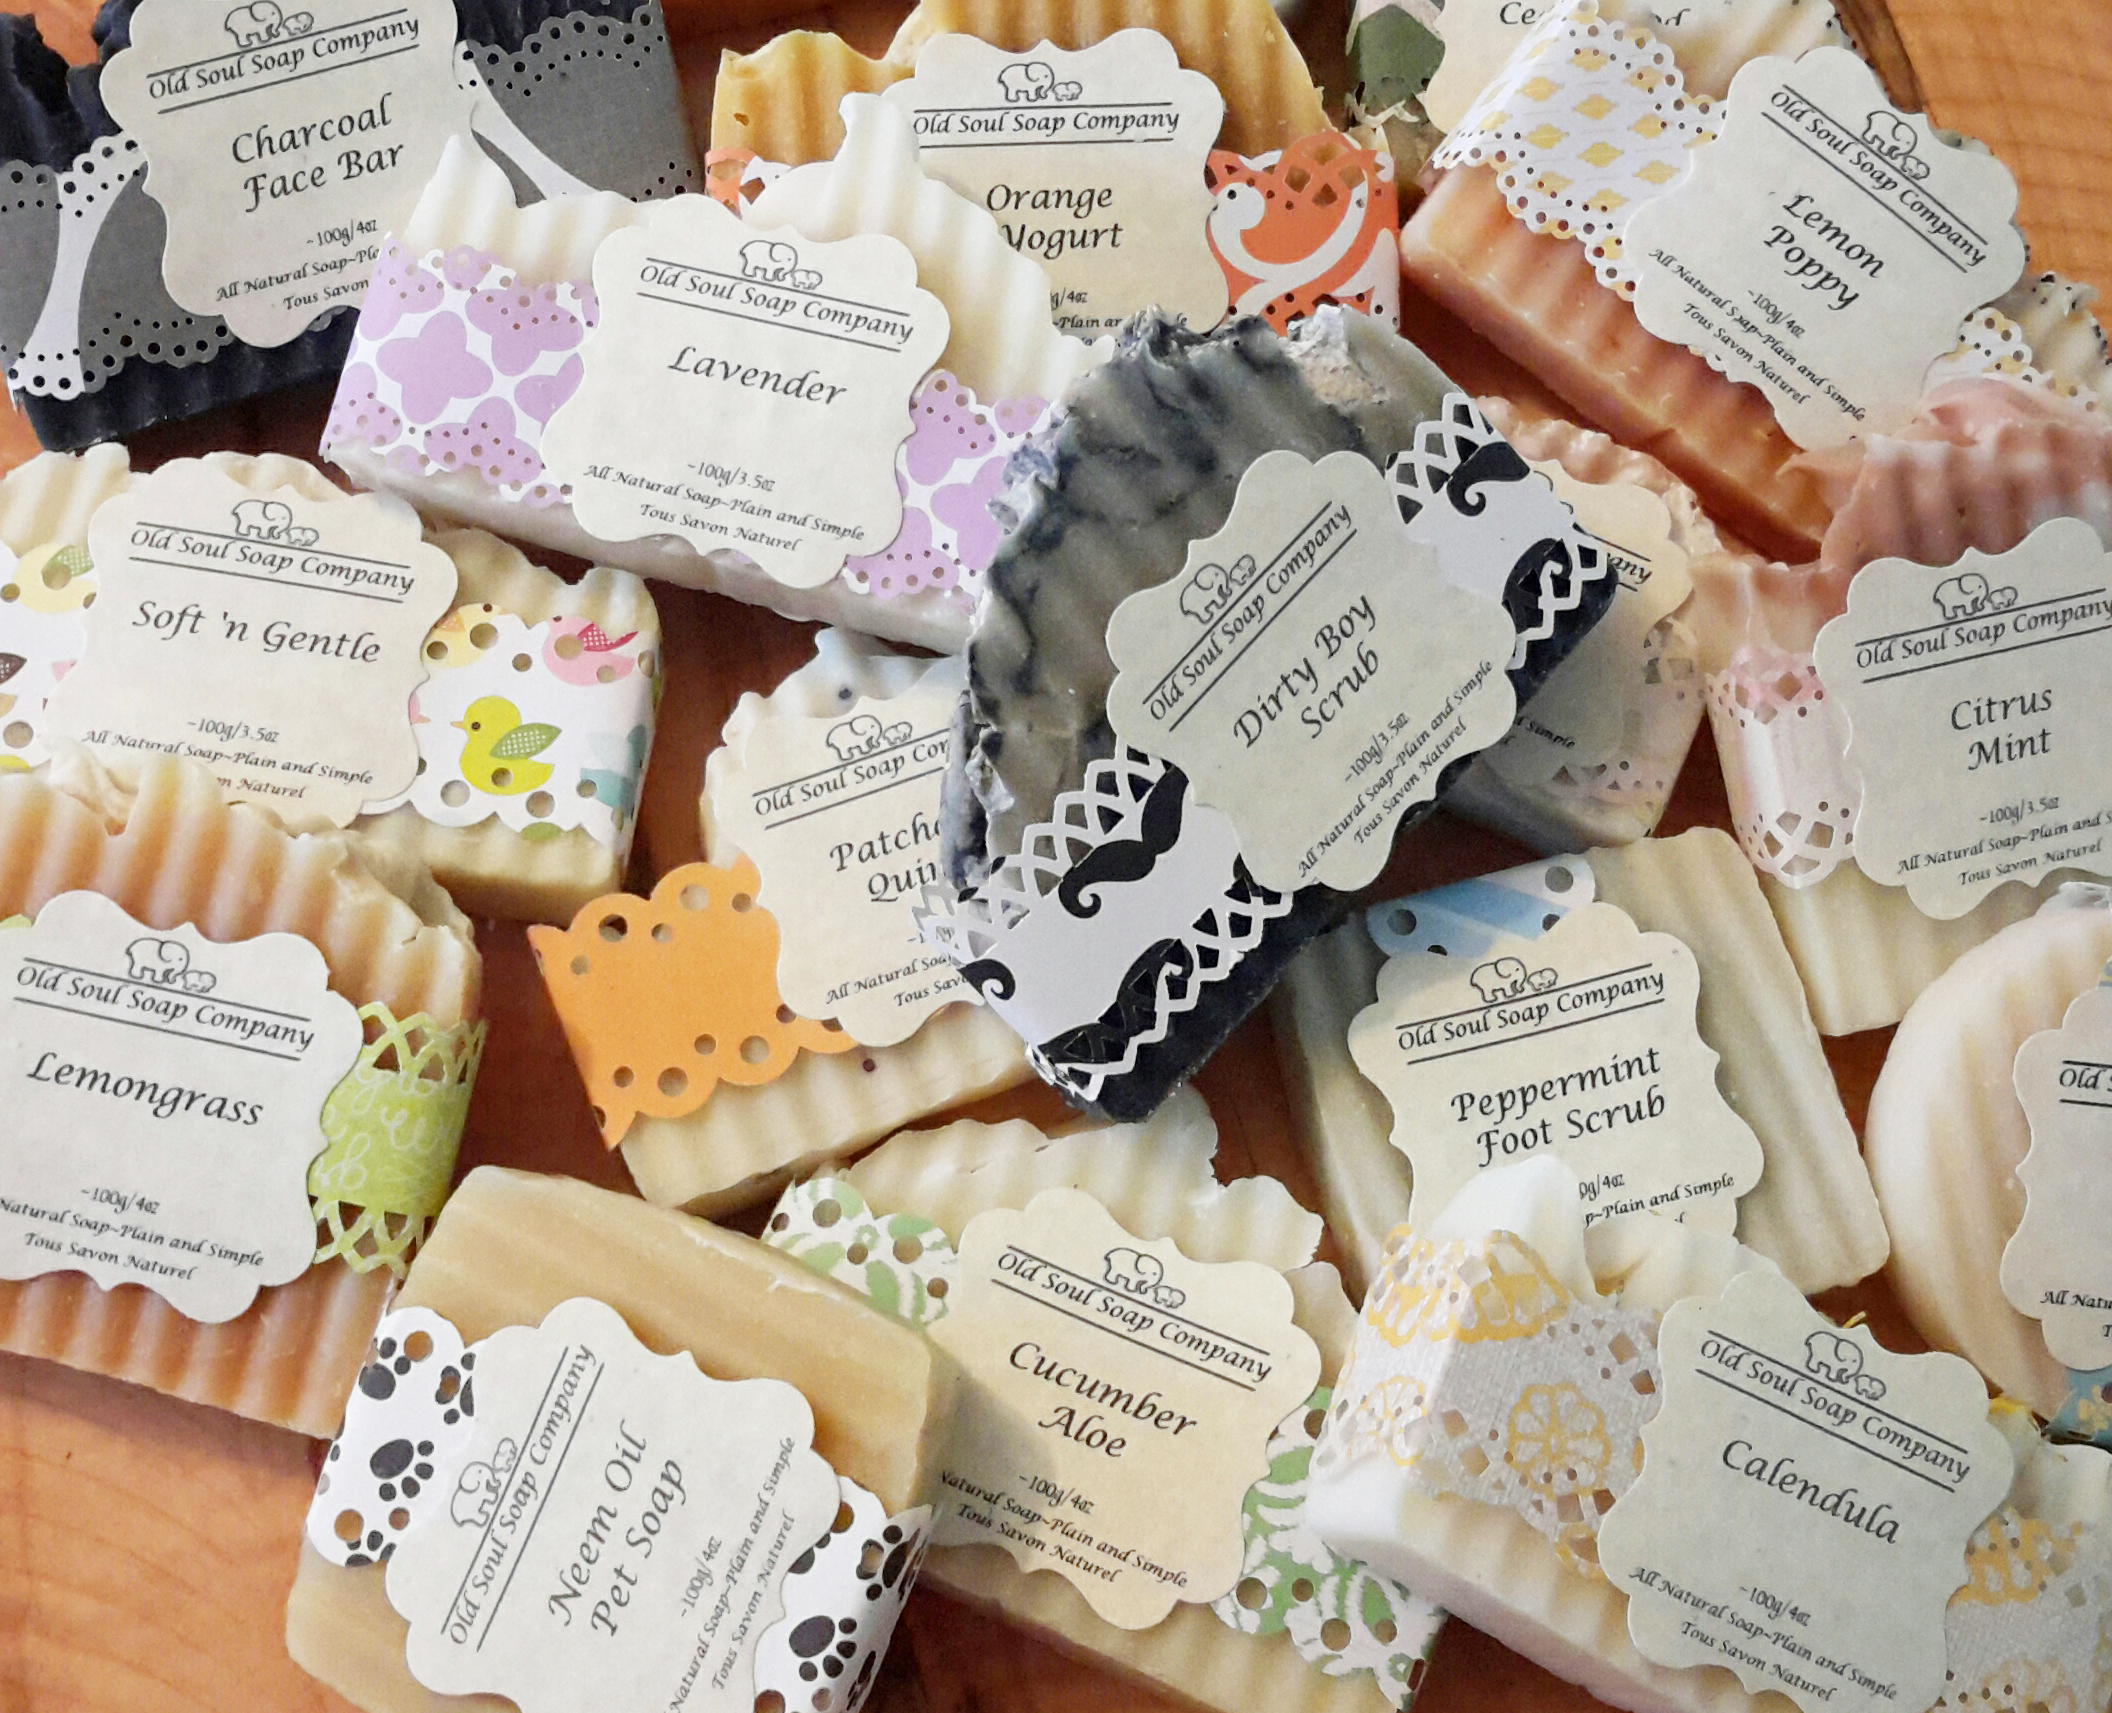 Shop Local: Old Soul Soap Company